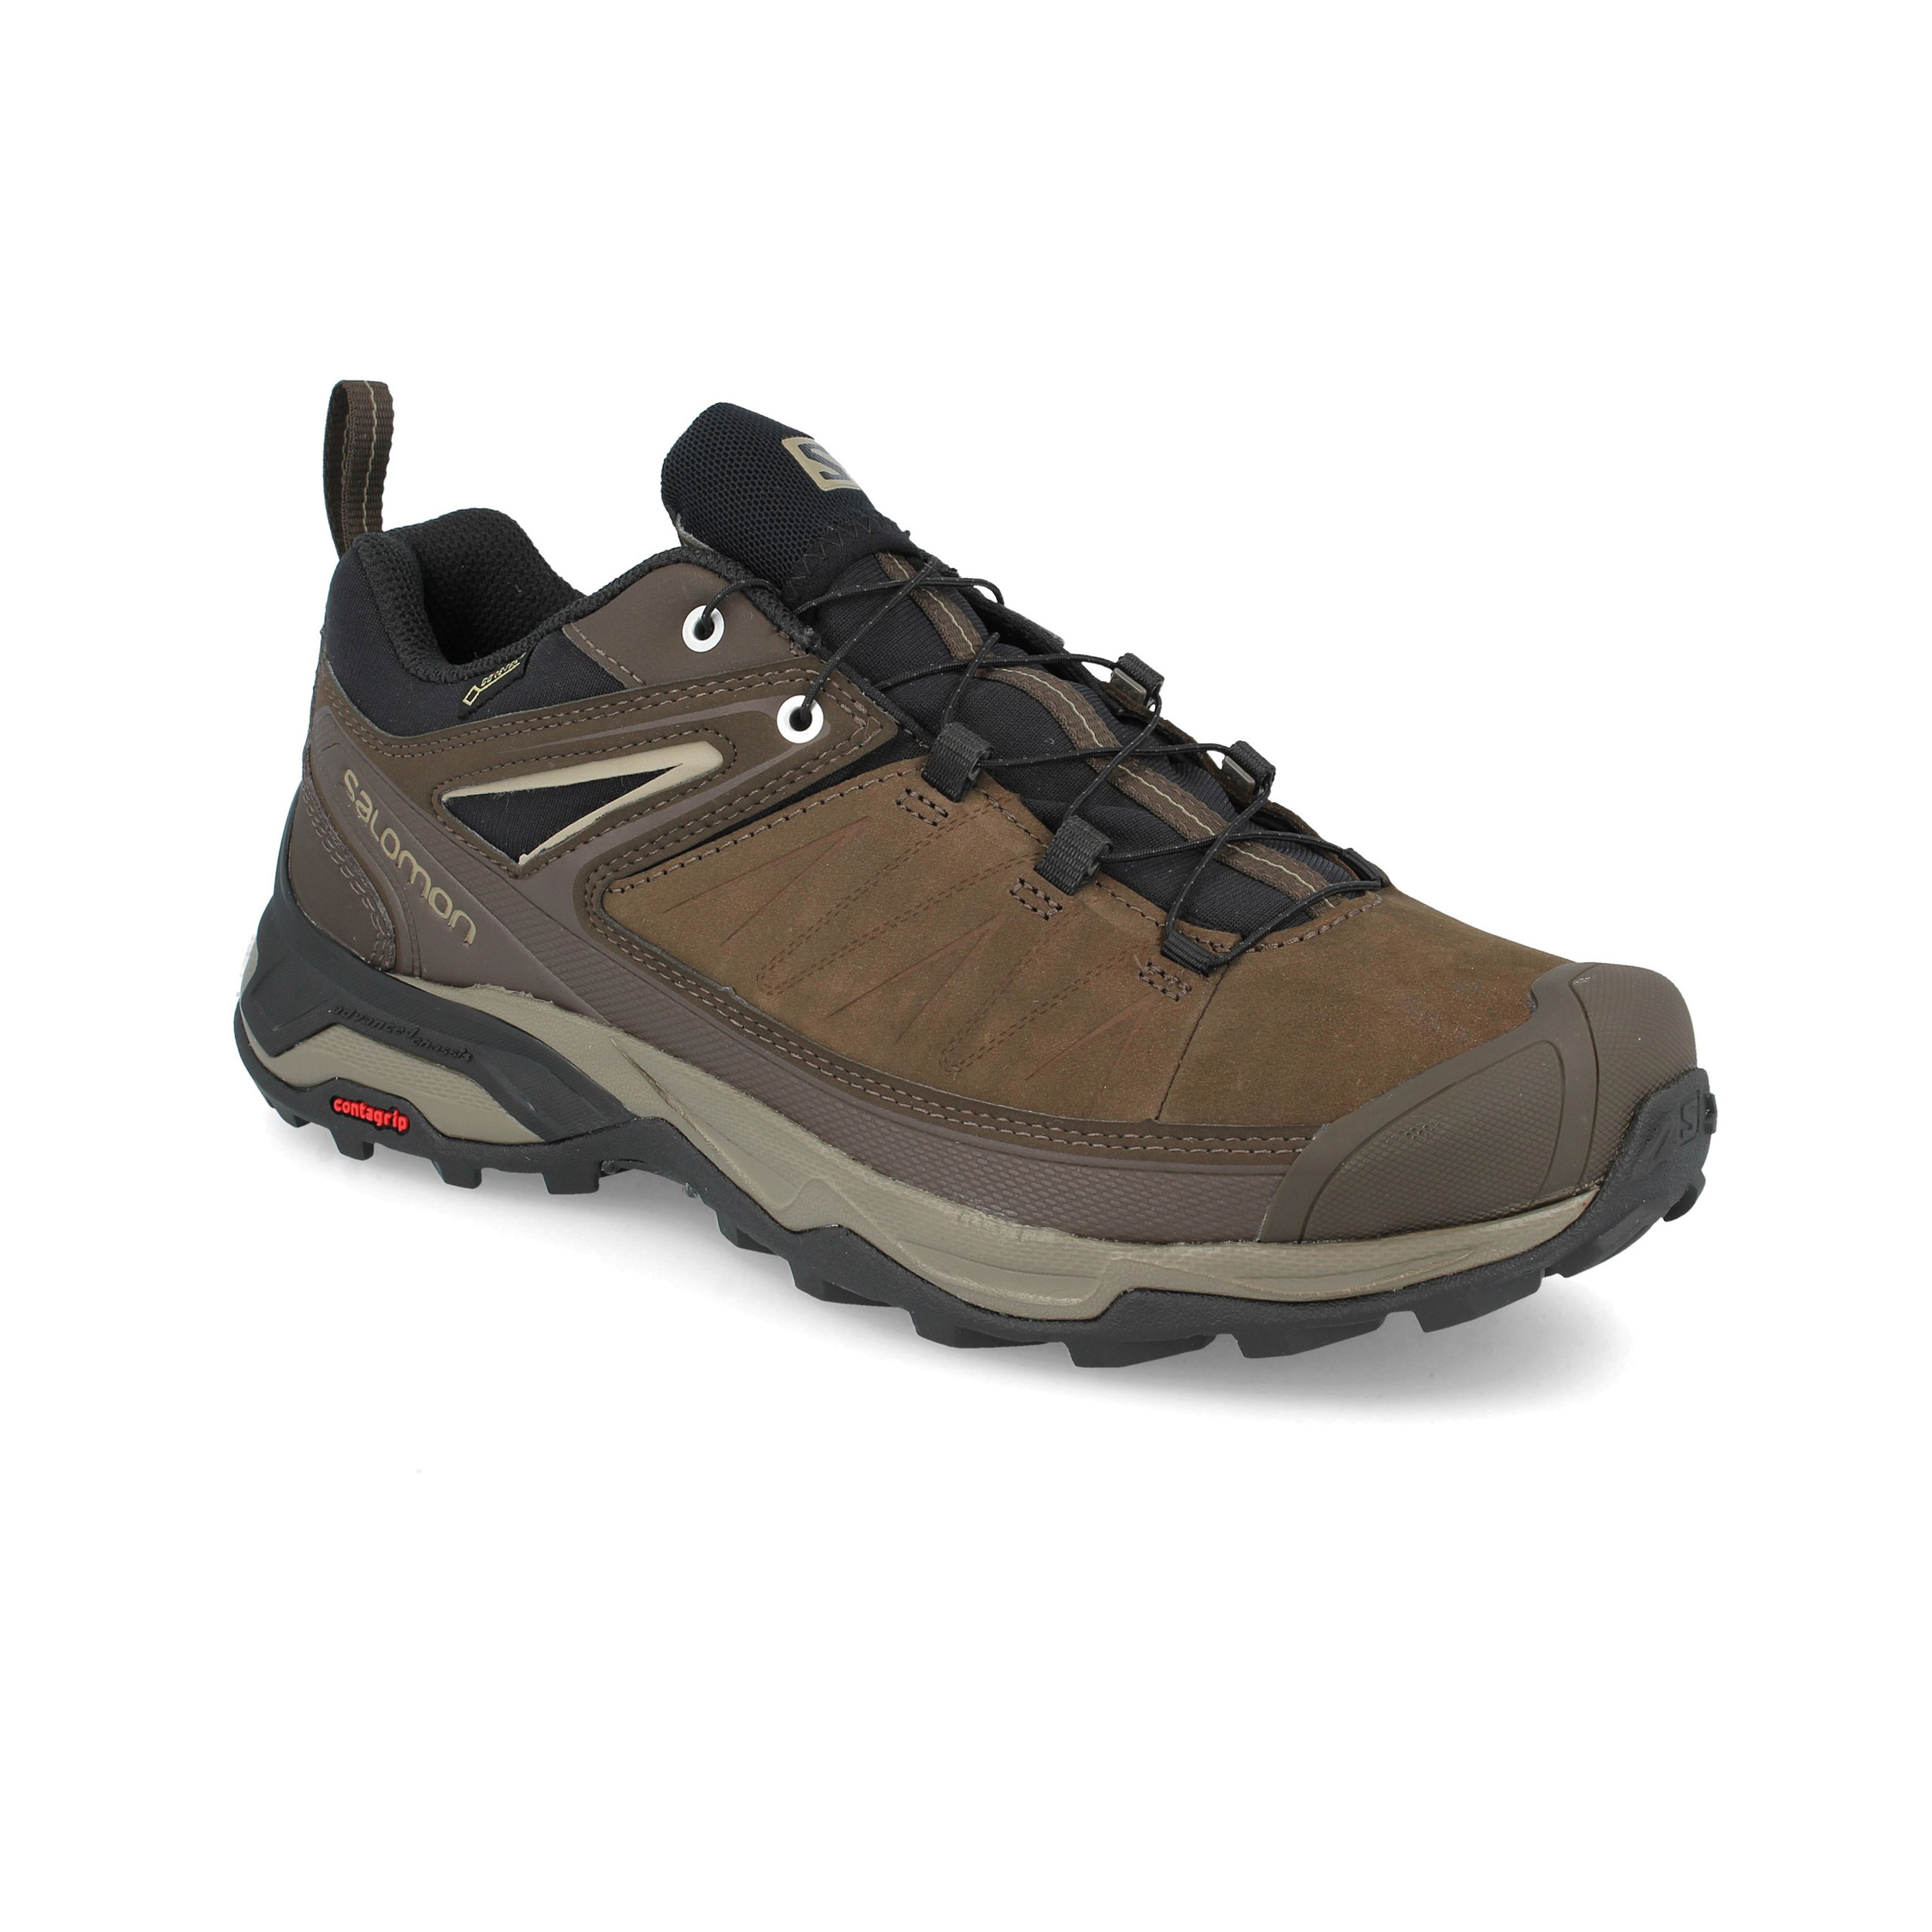 06141527 Details about Salomon Mens X Ultra 3 LTR GORE-TEX Walking Shoes Brown  Sports Outdoors Trainers